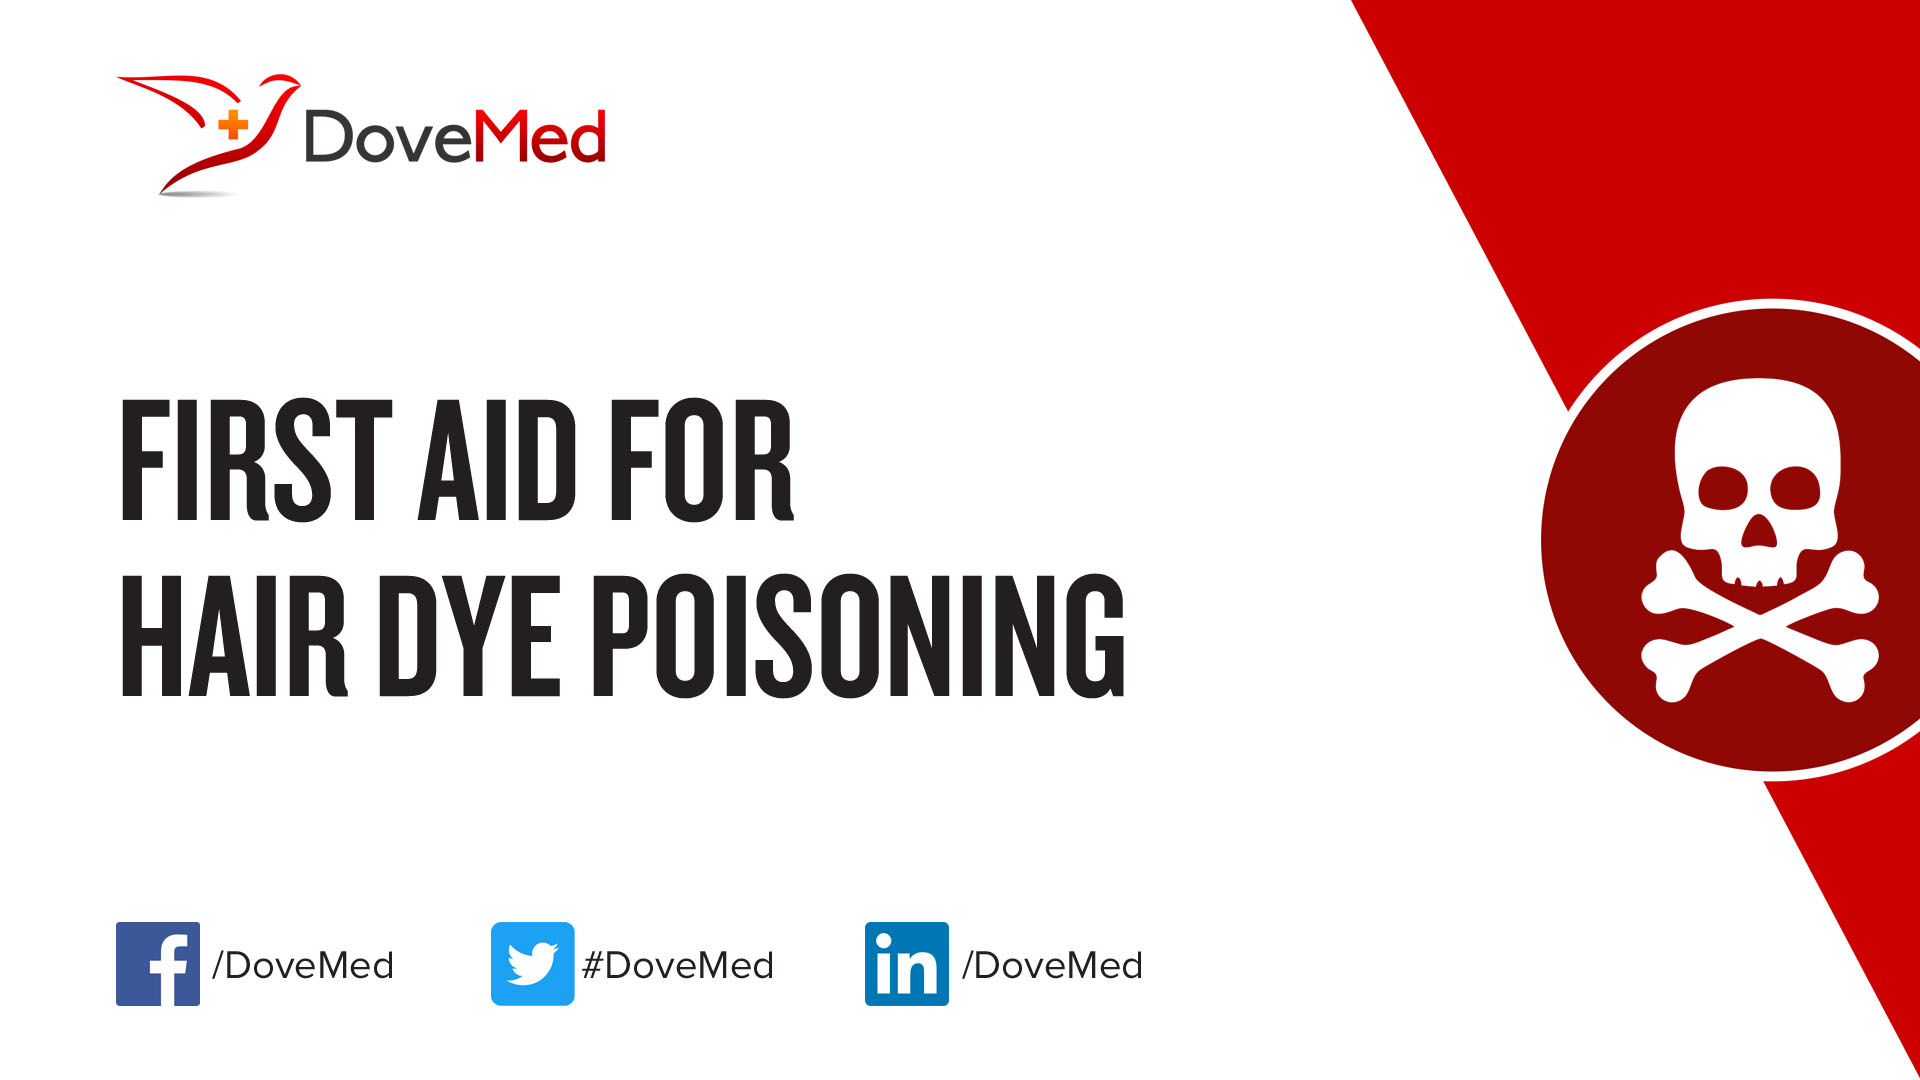 First Aid For Hair Dye Poisoning